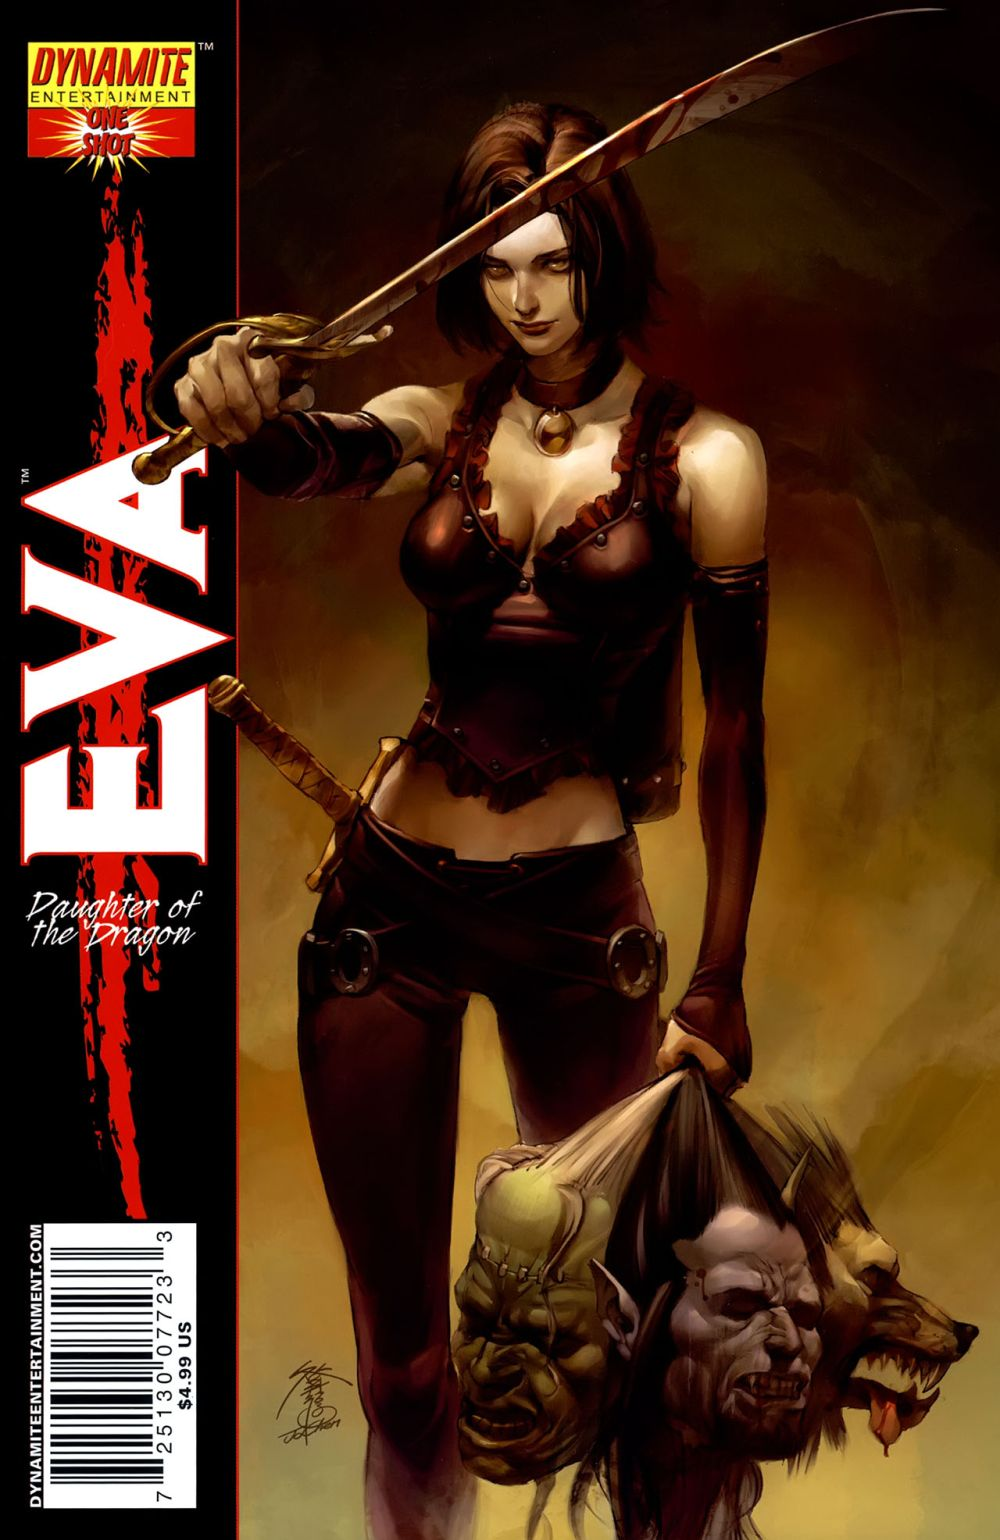 Eva- Daughter of the Dragon [Dynamite] OS1 0001.jpg